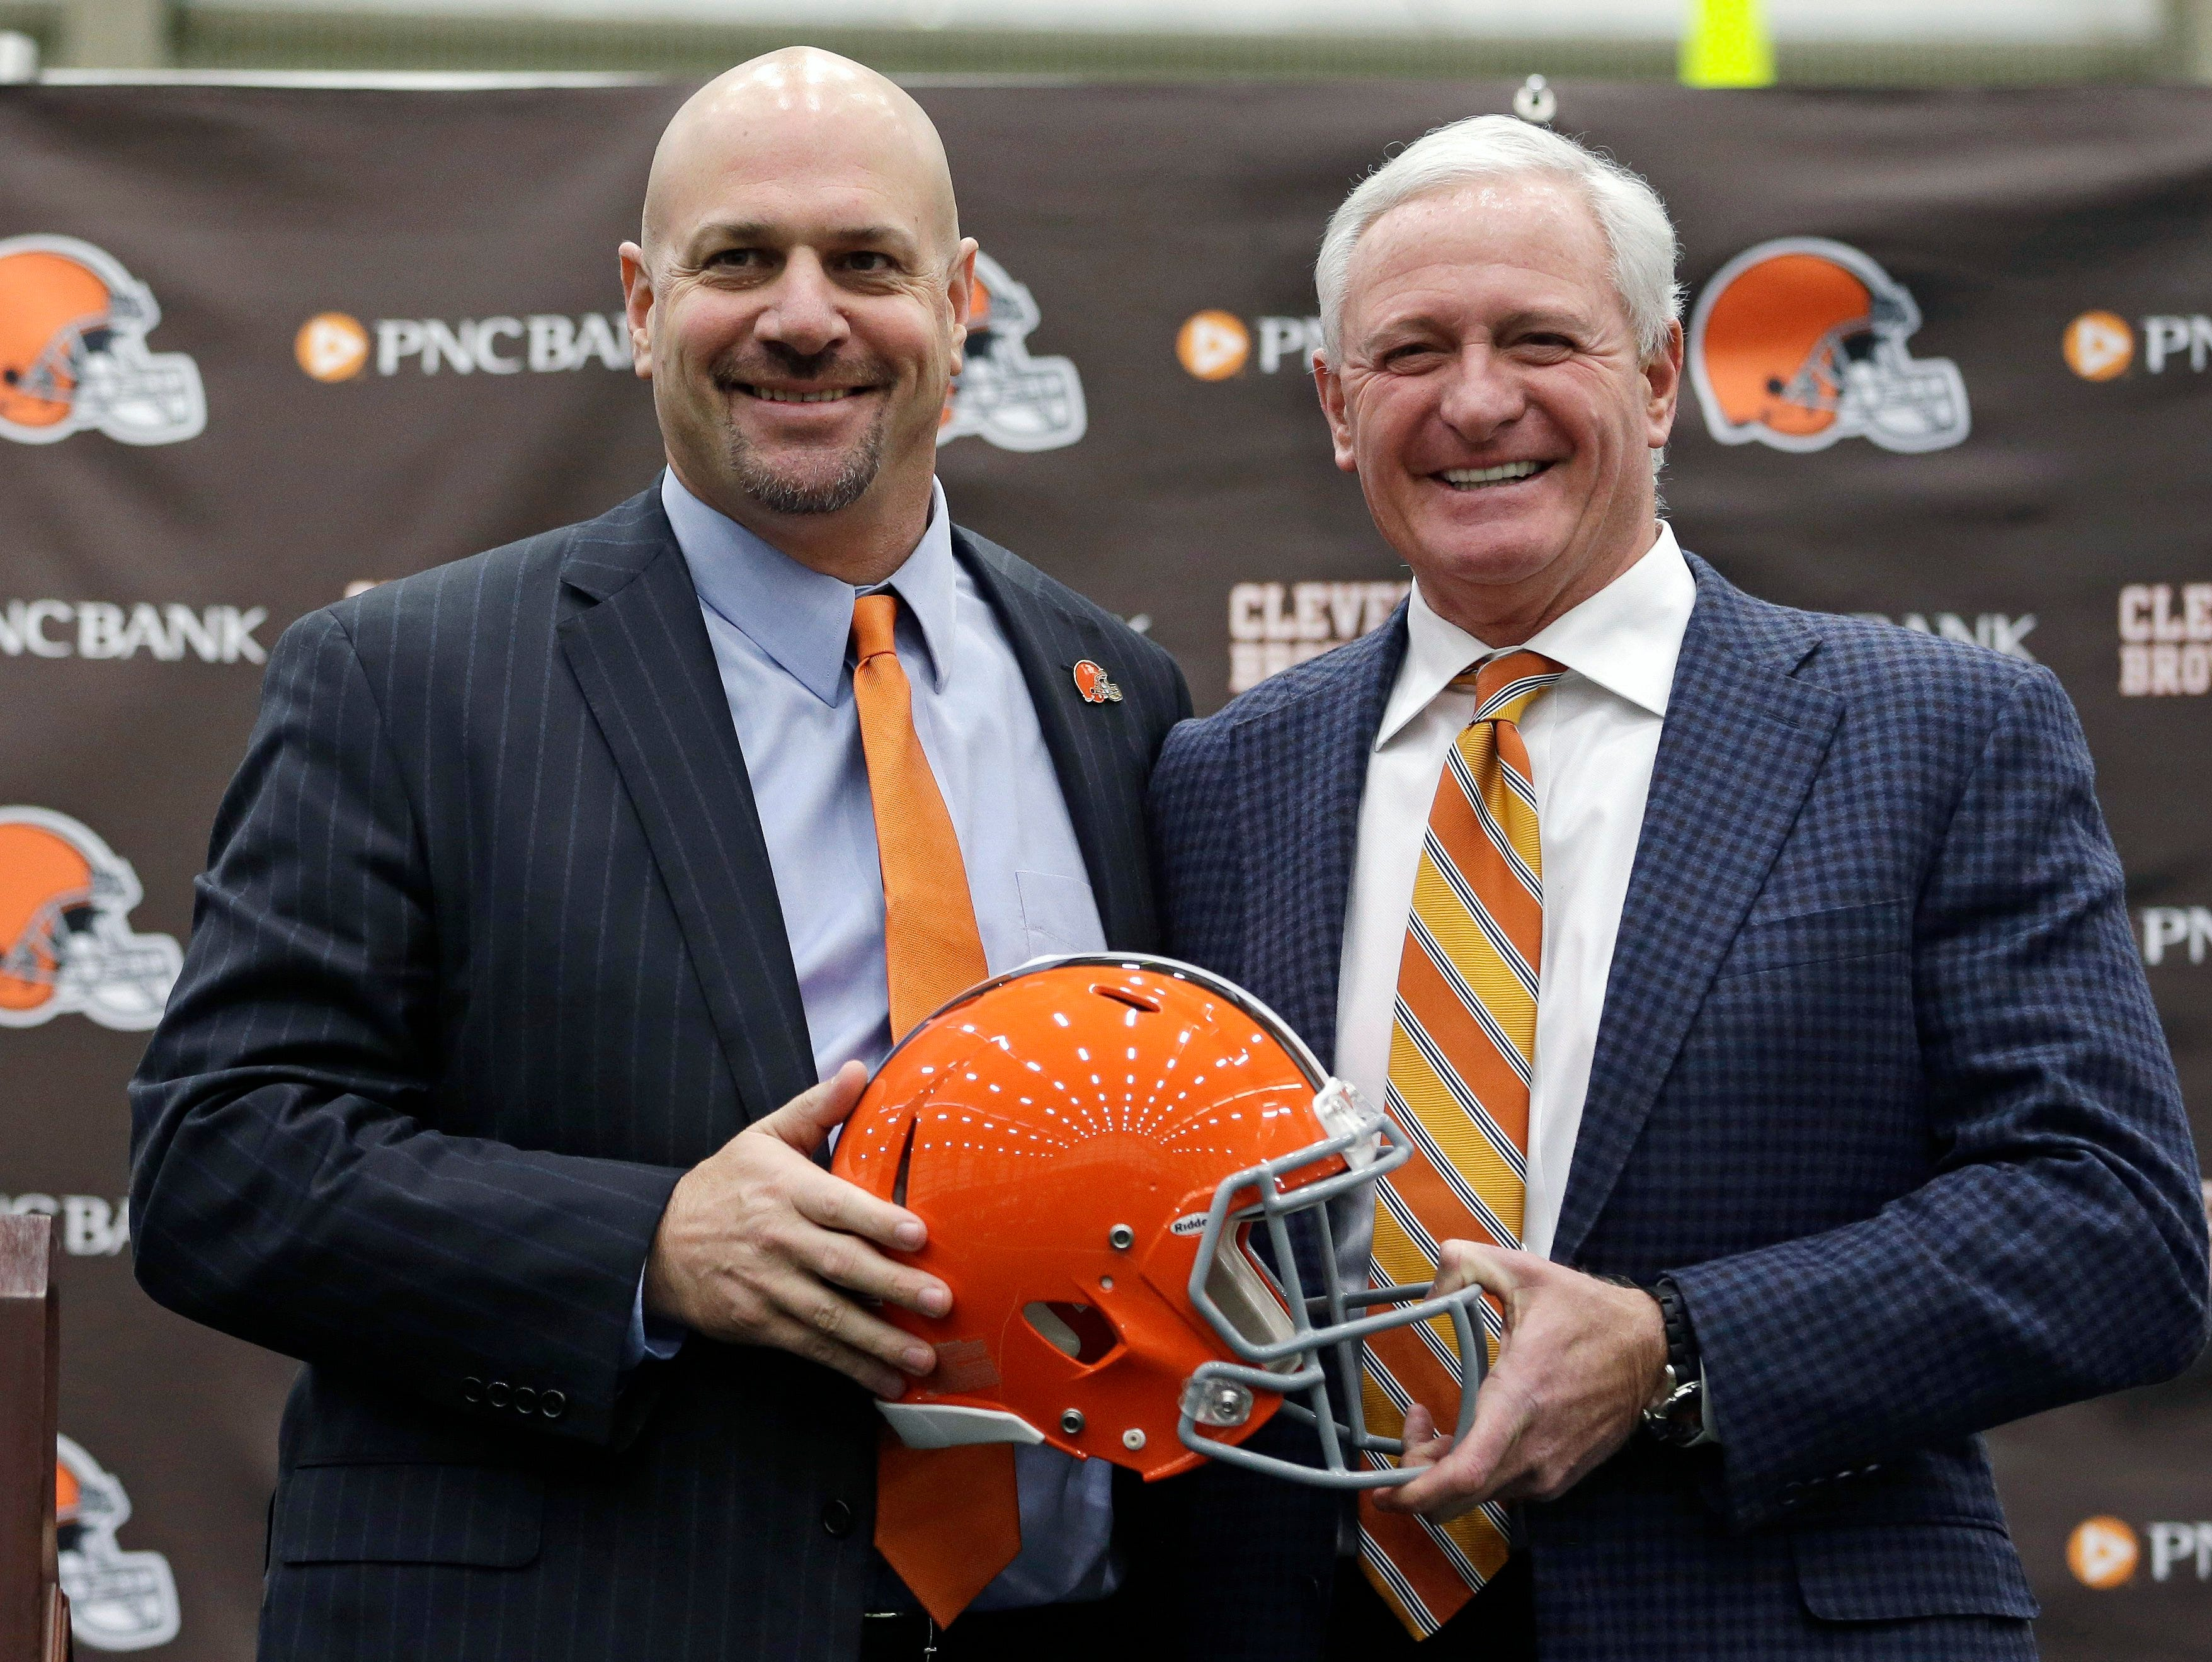 Cleveland Browns head coach Mike Pettine, left, poses with owner Jimmy Haslam after being introduced to the media Thursday, Jan. 23, 2014, in Berea, Ohio. Buffalo's defensive coordinator, who met with team officials for the first time just a week ago, finalized a contract Thursday to become the Browns' seventh full-time coach since 1999.